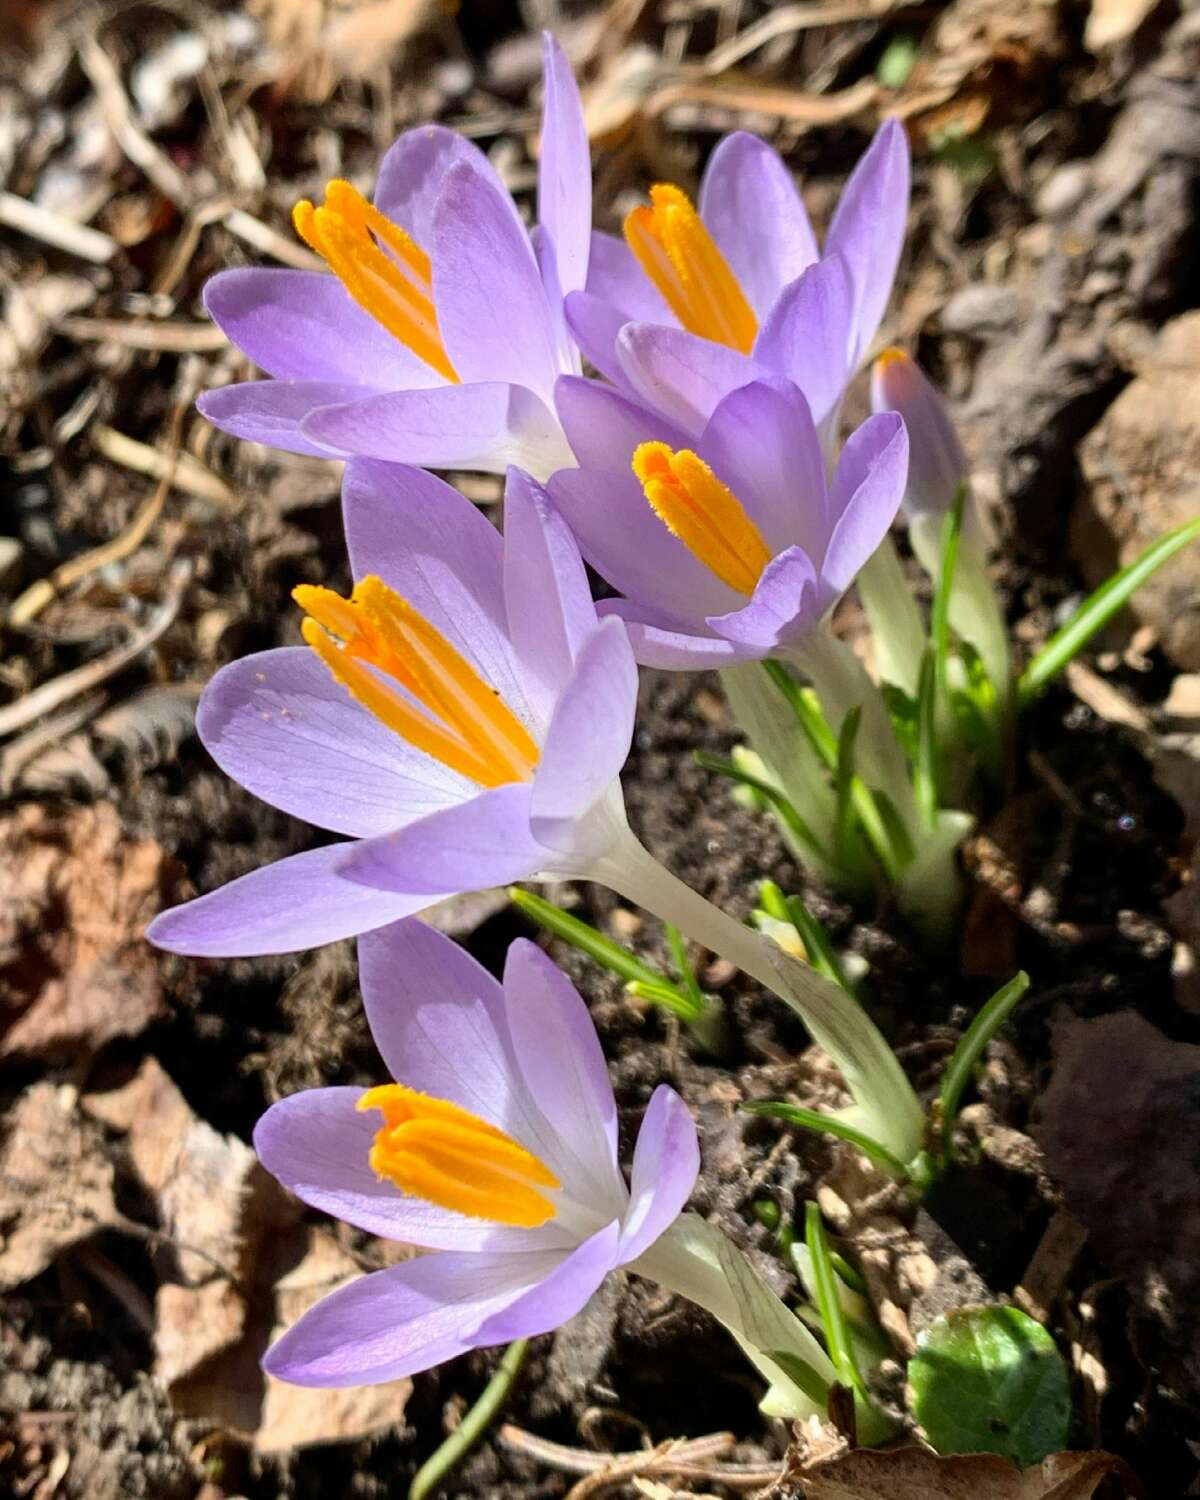 A sure sign is spring here in Averill Park are the crocuses. First flower the honey bees feed on, notes Barbara Nuffer of Averill Park.